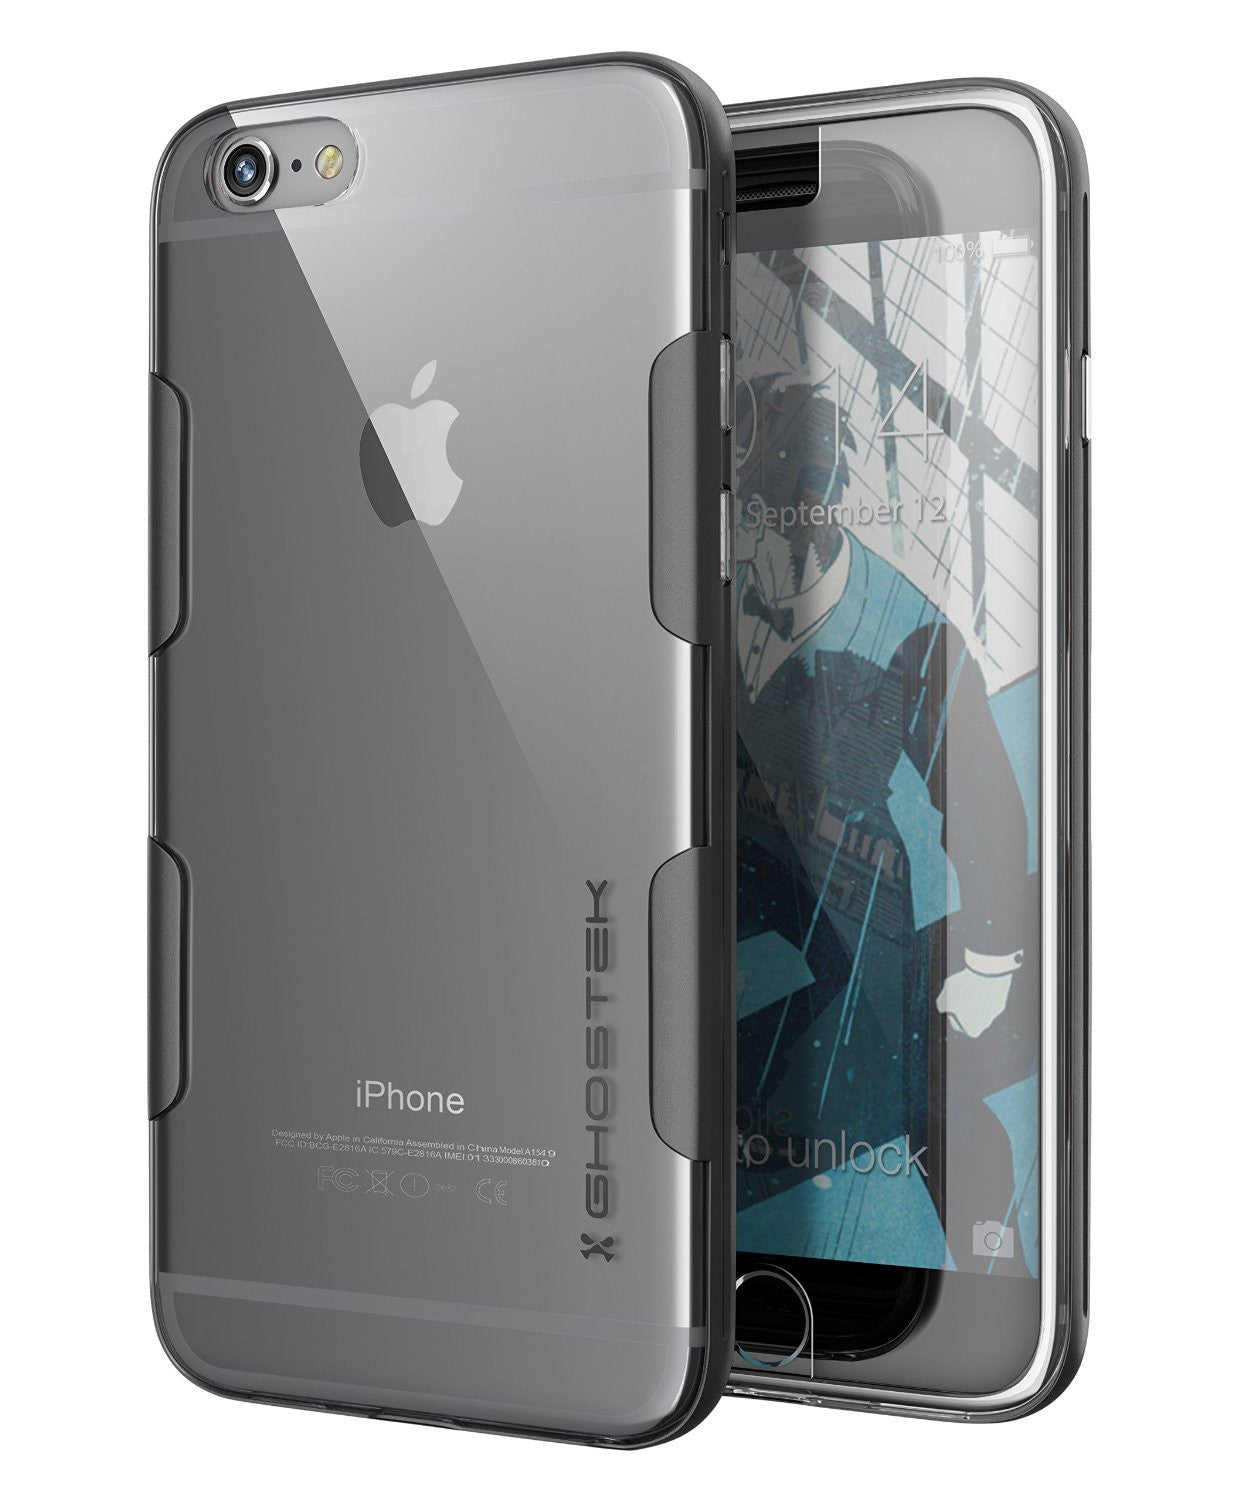 iPhone 6s Plus Case Space Grey Ghostek Cloak, Slim Protective w/ Tempered Glass | Lifetime Warranty